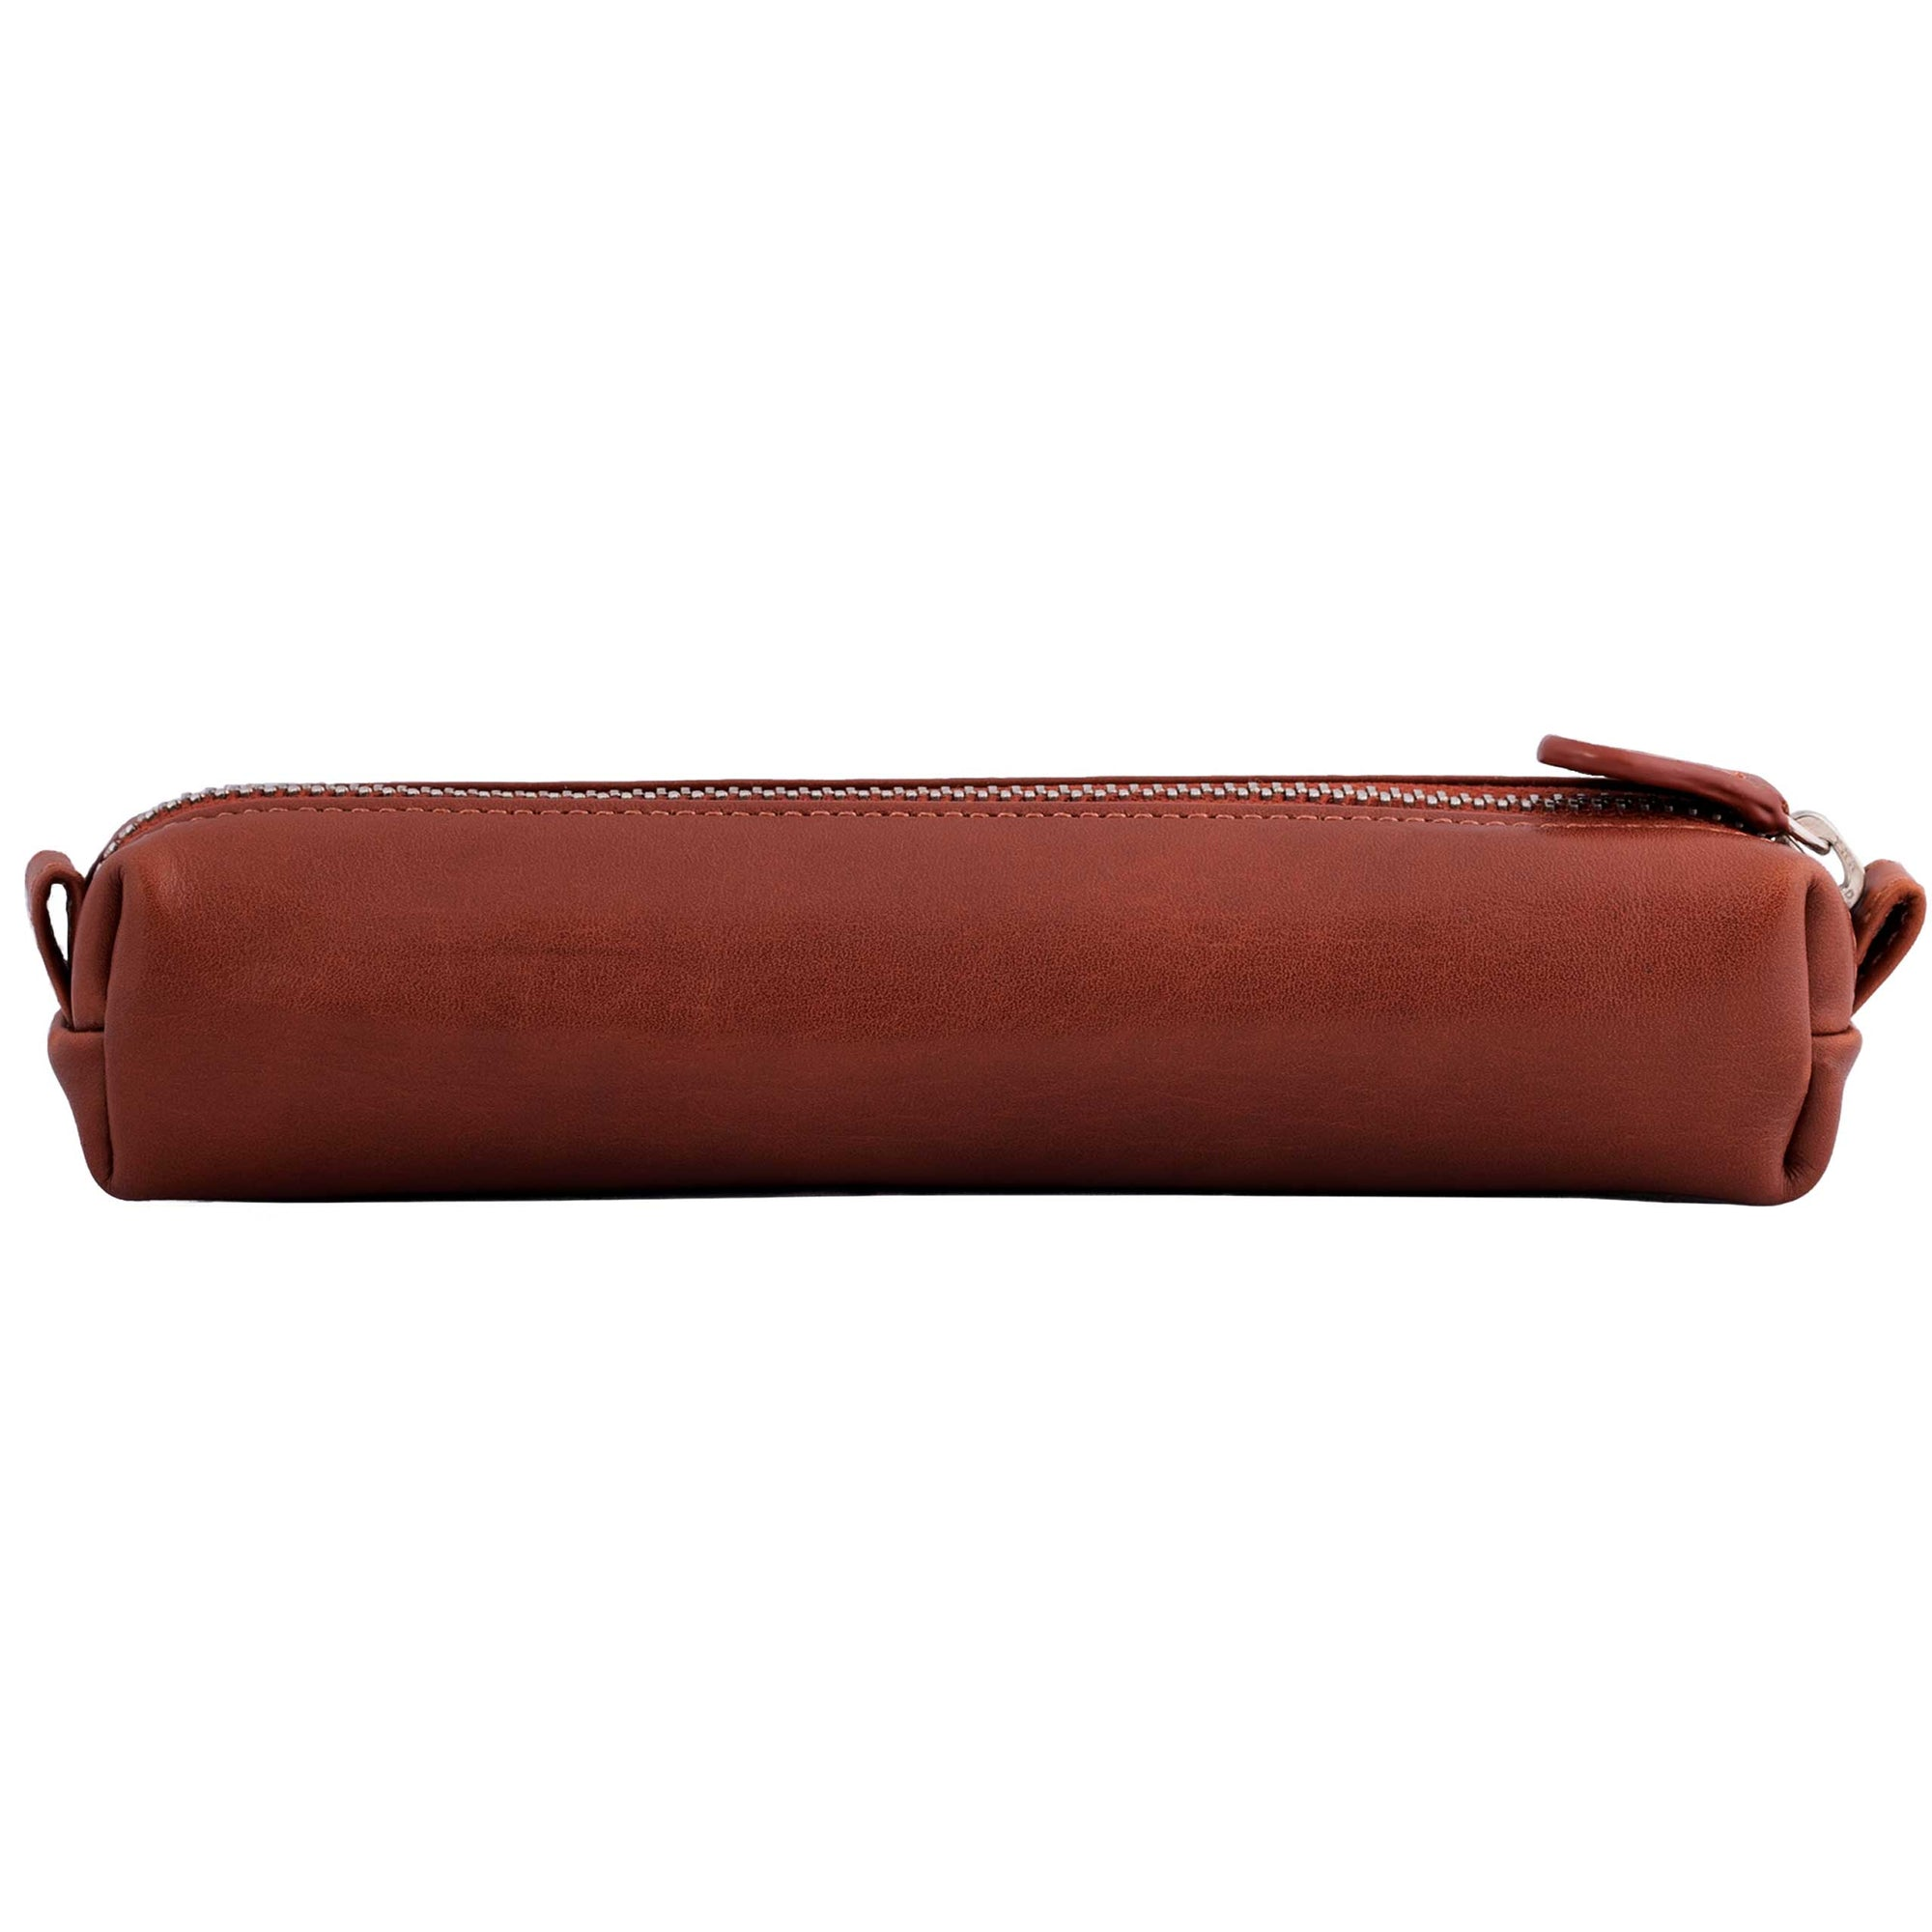 Multi-Purpose Zippered Leather Pen Pencil Case in Bugatti Tan